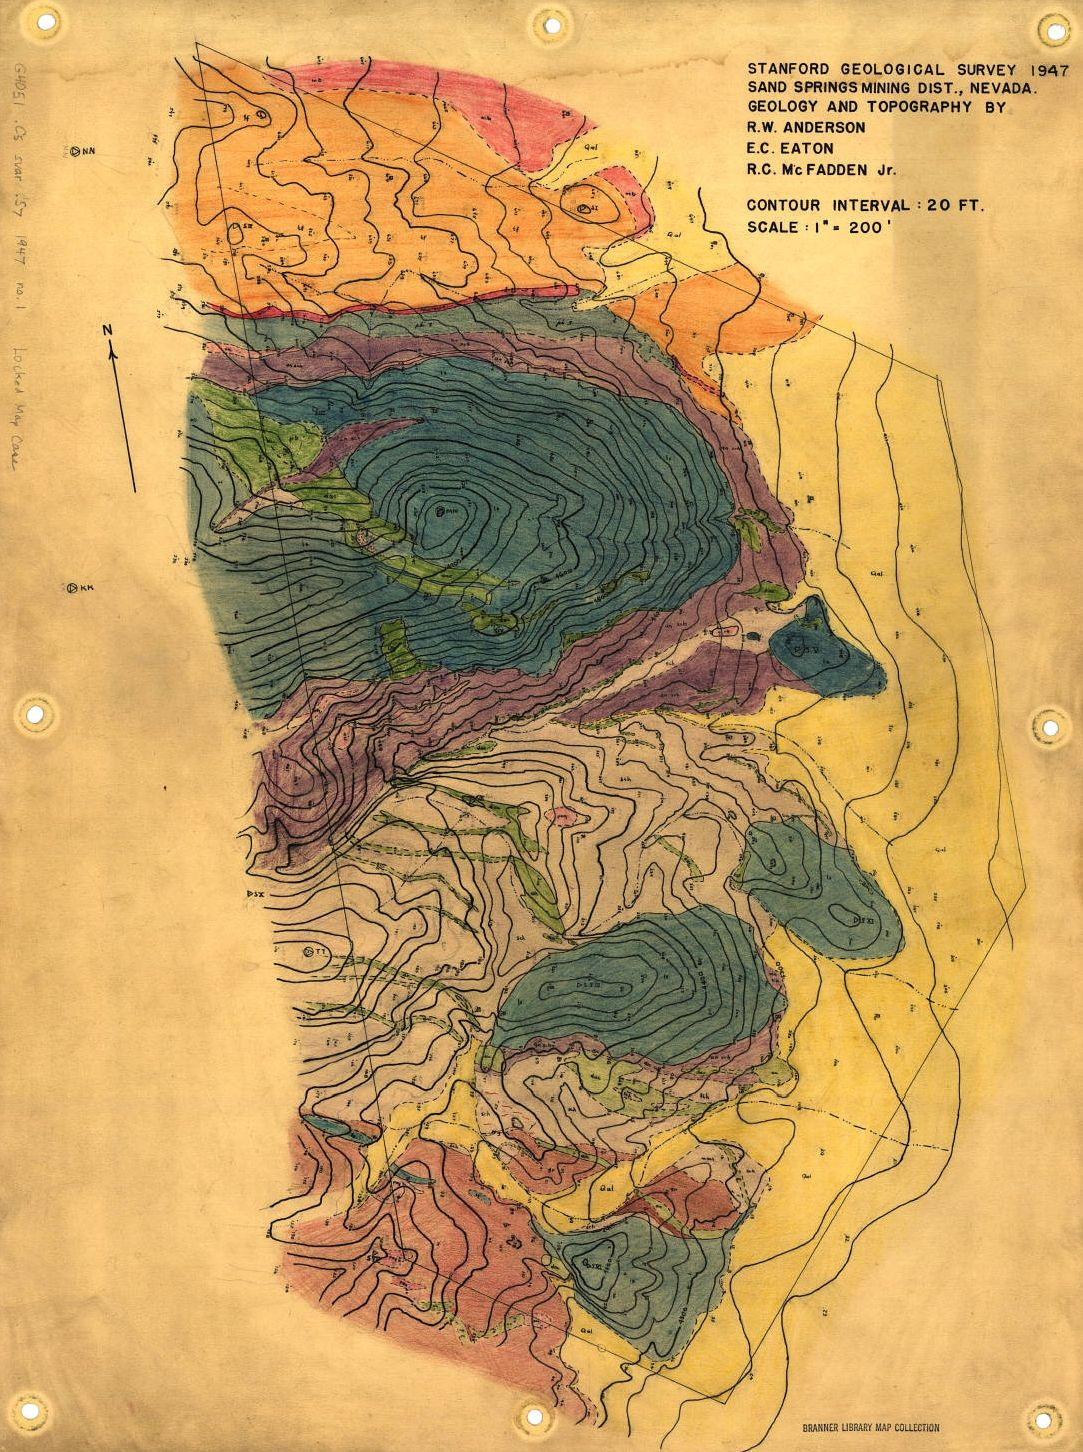 Stanford Geological Survey 1947 Stanford Geological Survey